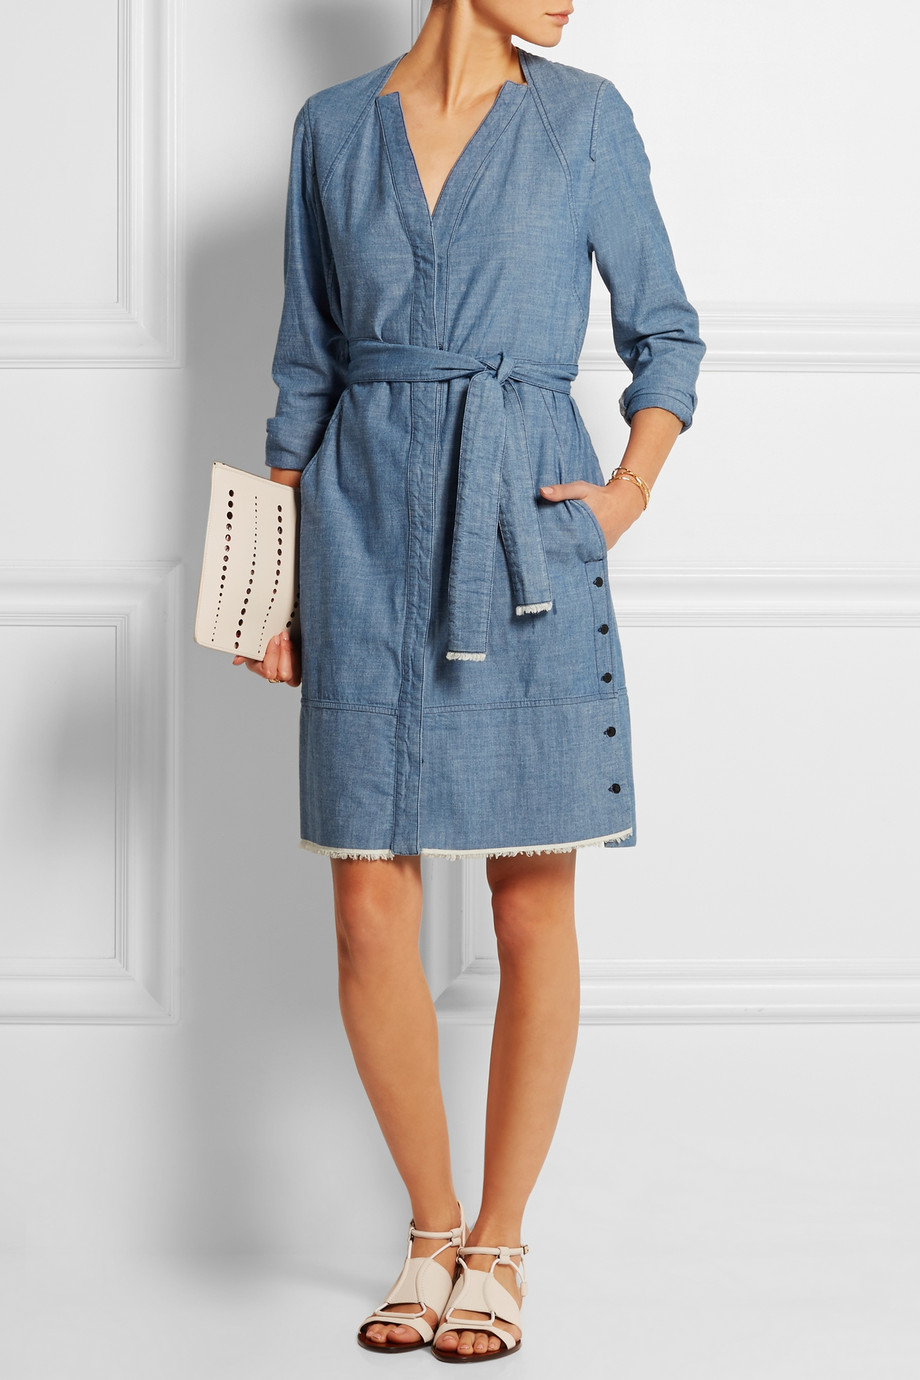 a proenza schouler spring summer 2015 denim dress